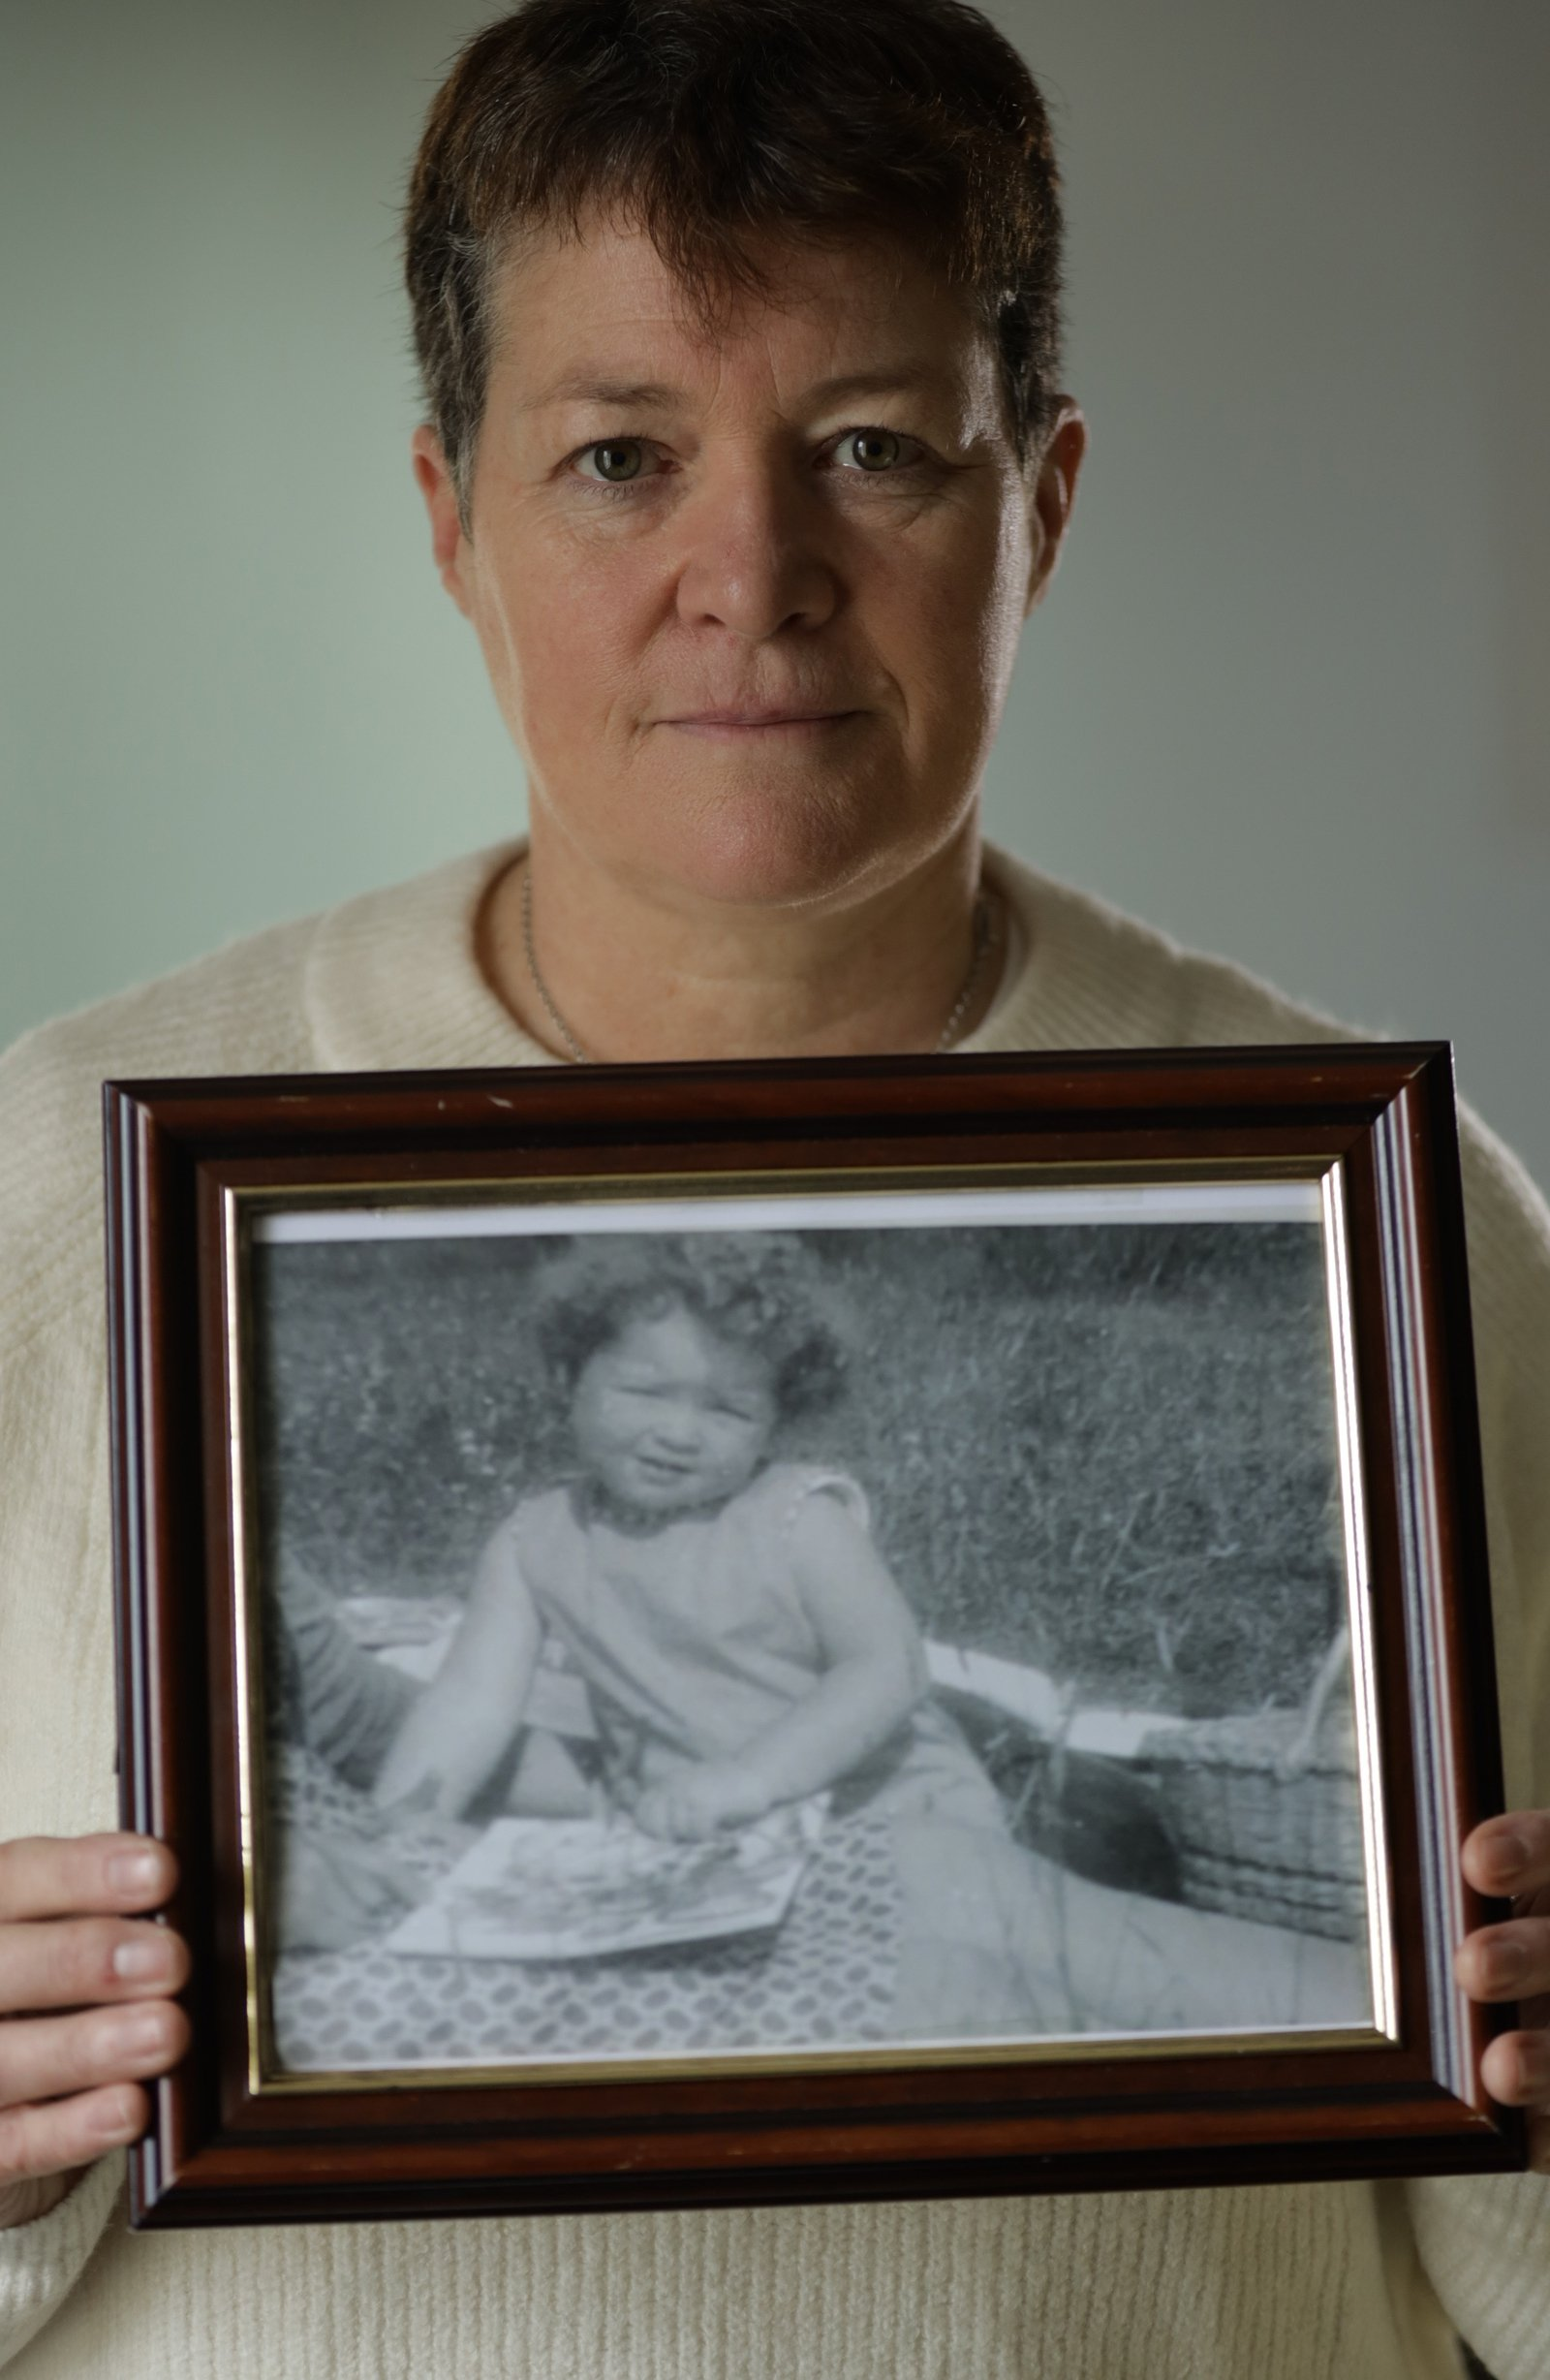 Image - Because she was illegally adopted, Mary Dolan has no idea who she really is